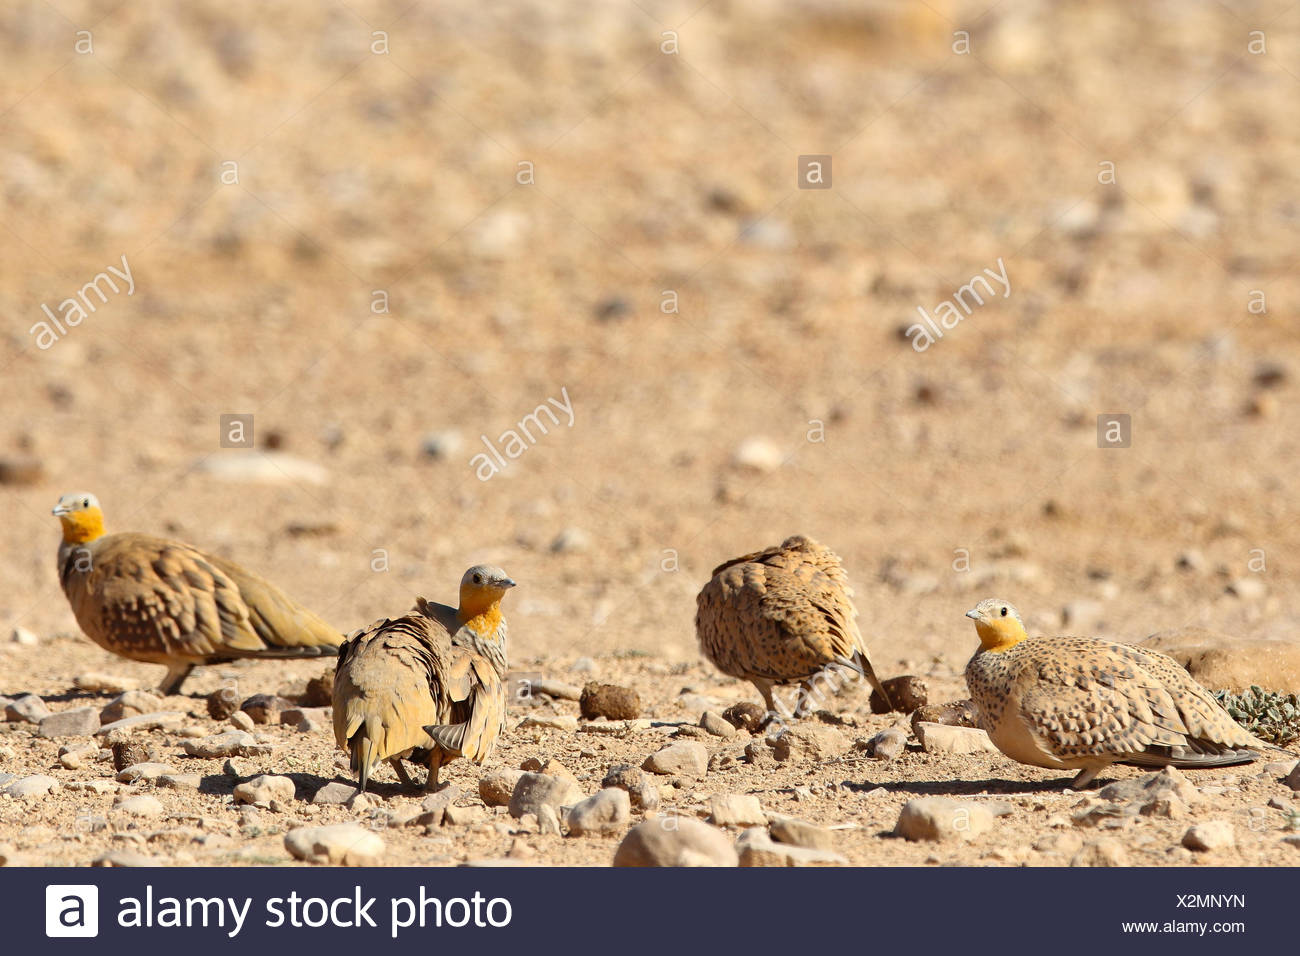 Spotted sandgrouse, Pterocles senegallus, on ground. Stock Photo